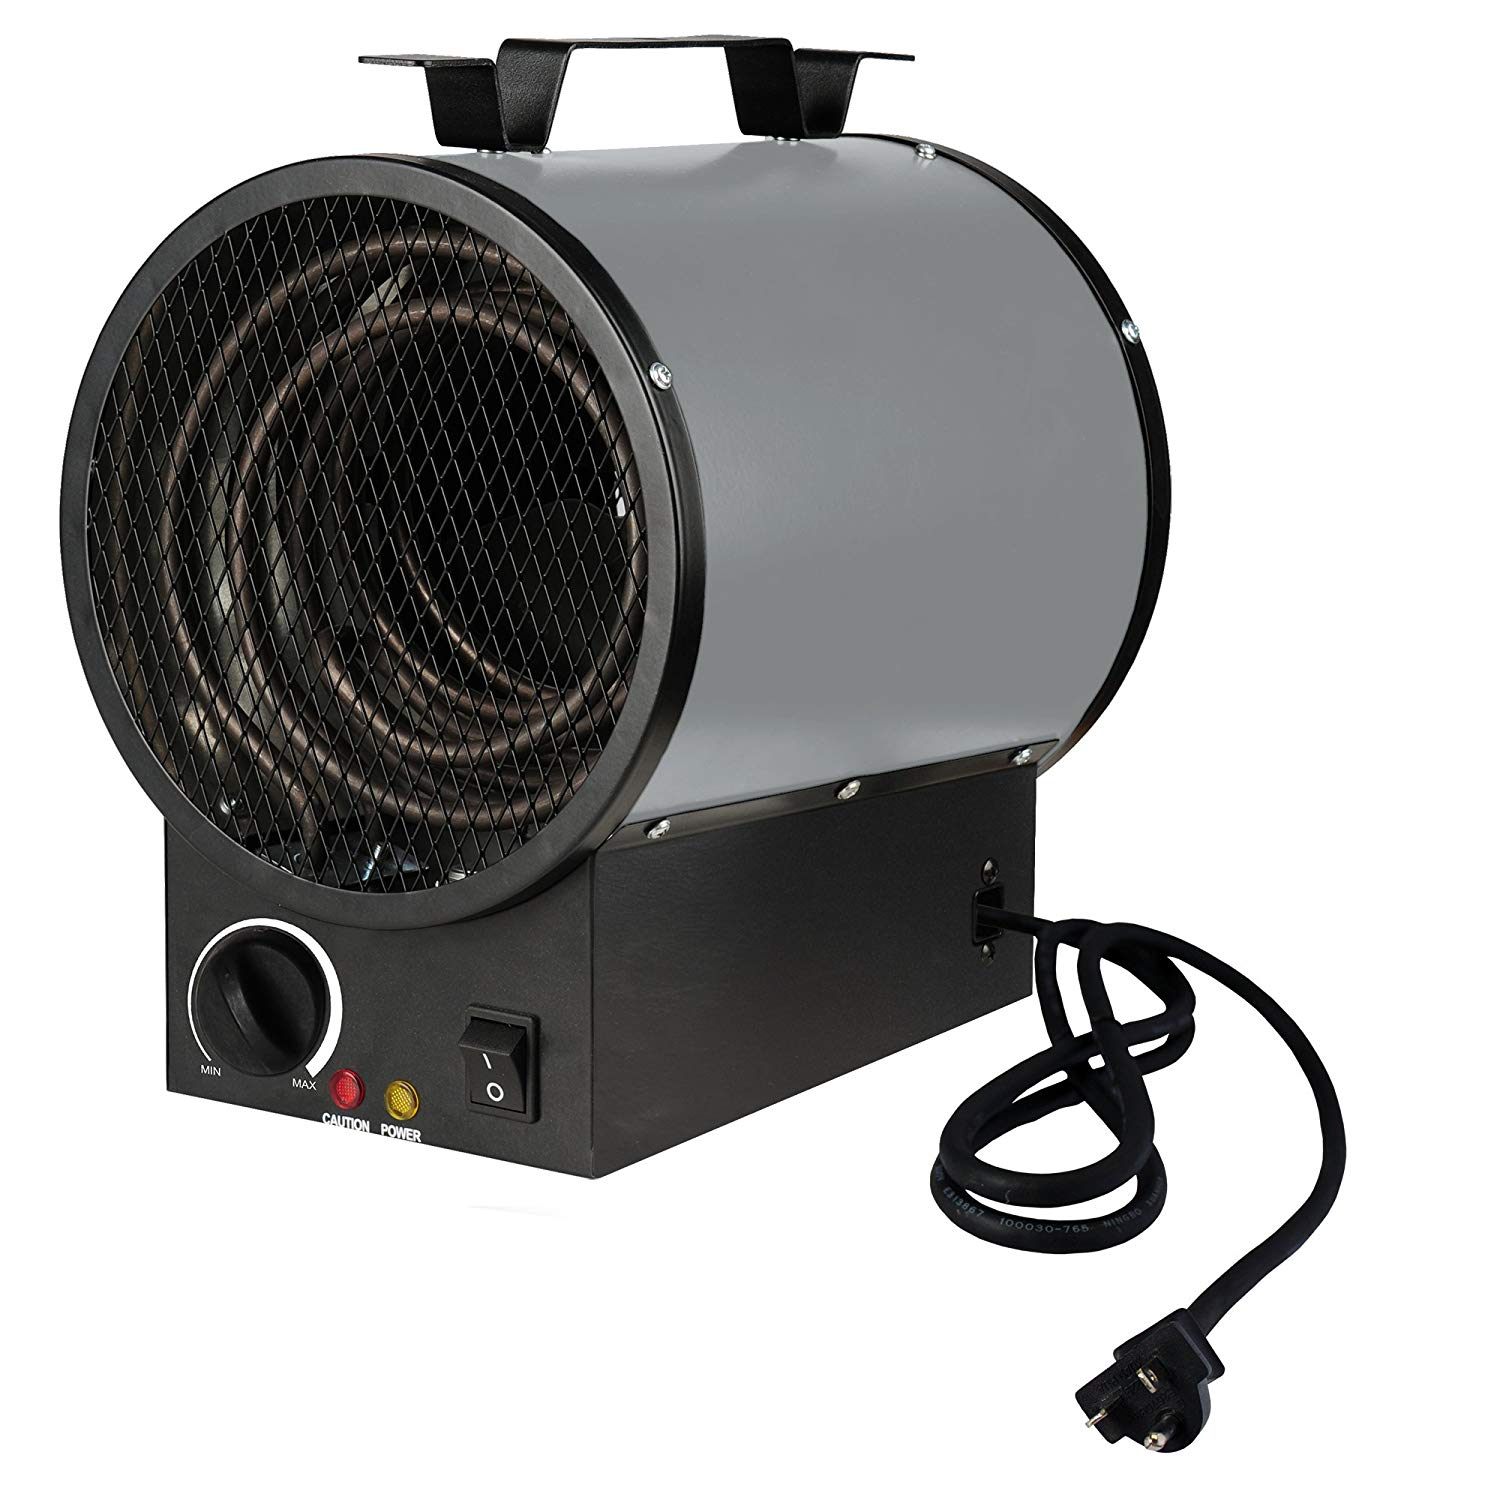 The Best Garage Heaters Reviews & Buying Guide For 2020